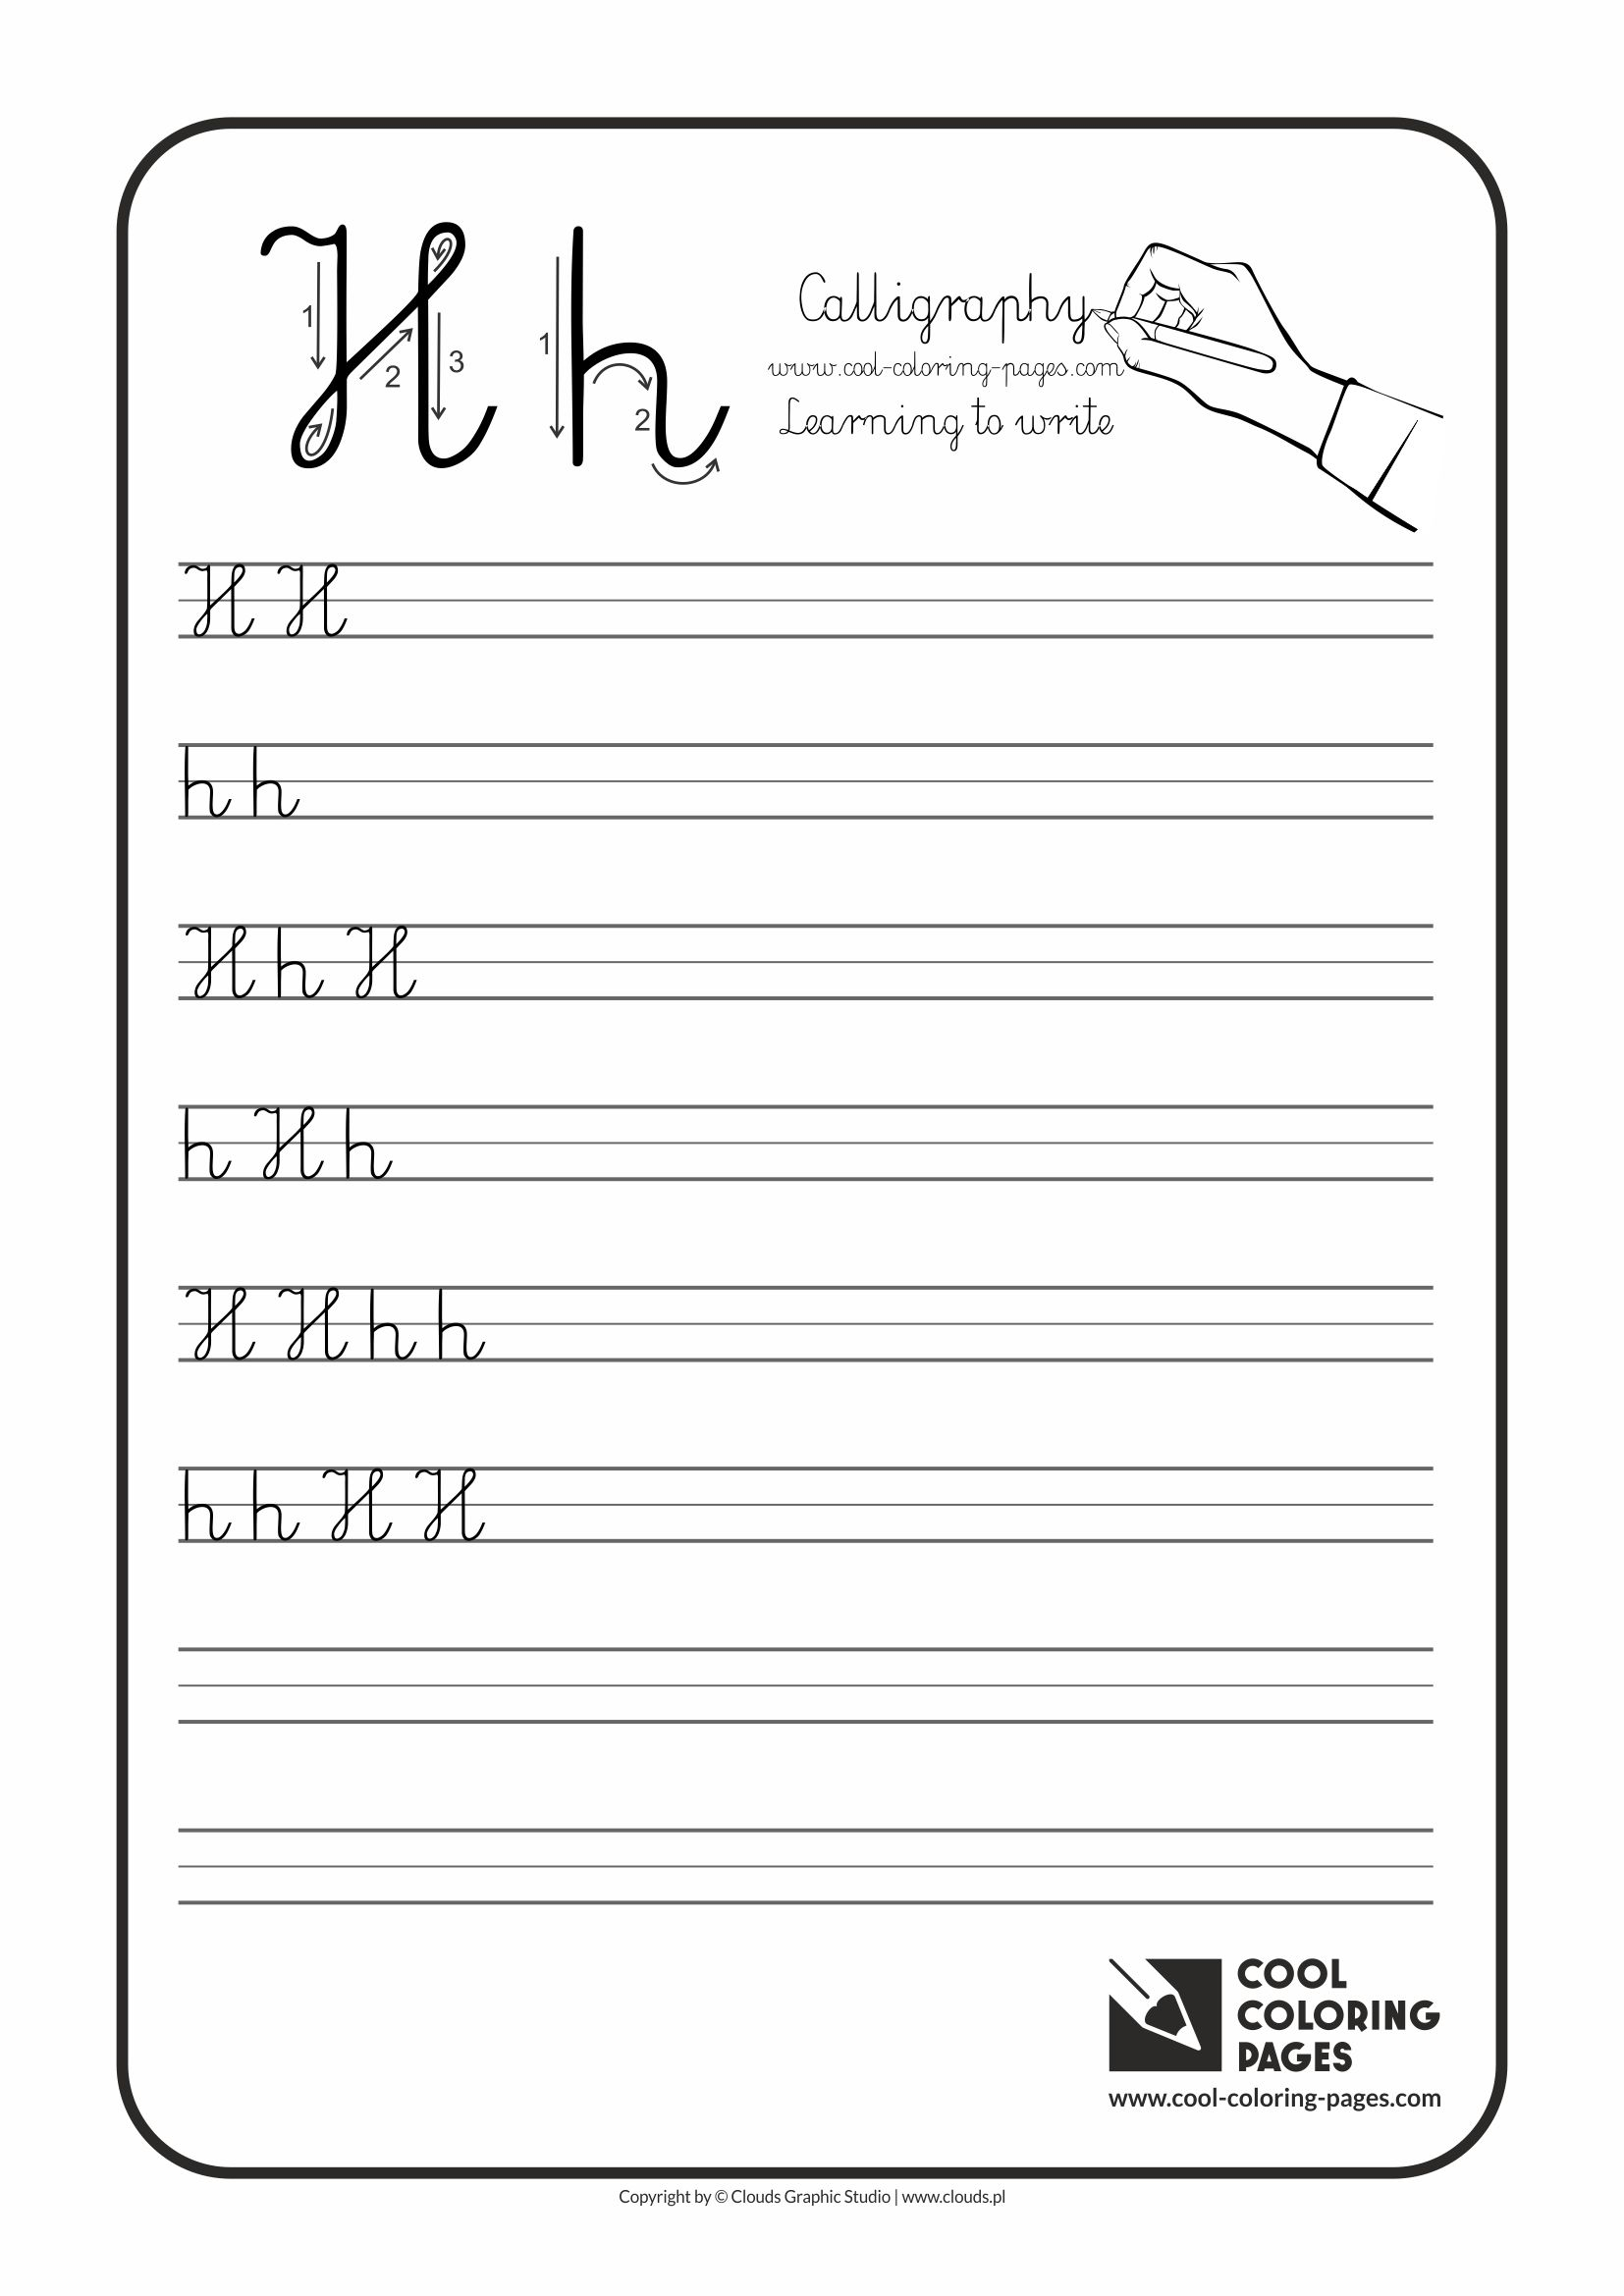 calligraphy for kids letters cool coloring pages